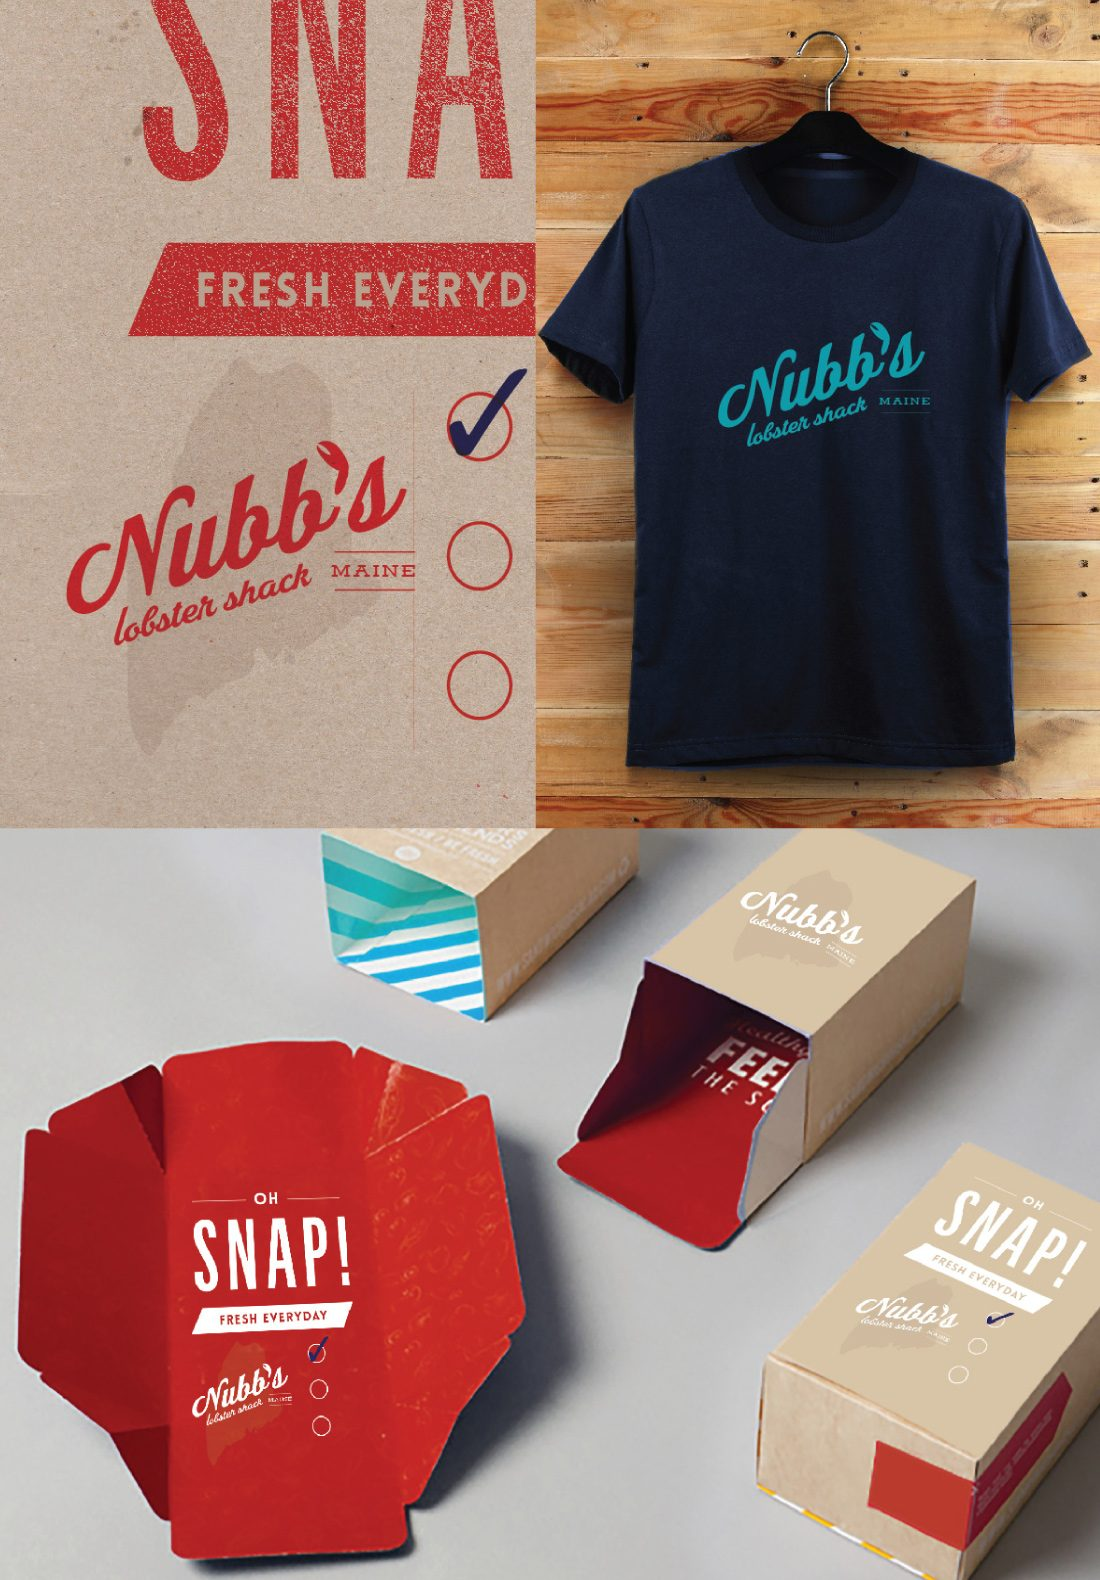 hotel restaurant logo with retro font and lobster claw on t-shirt, typography and packaging by branding agency